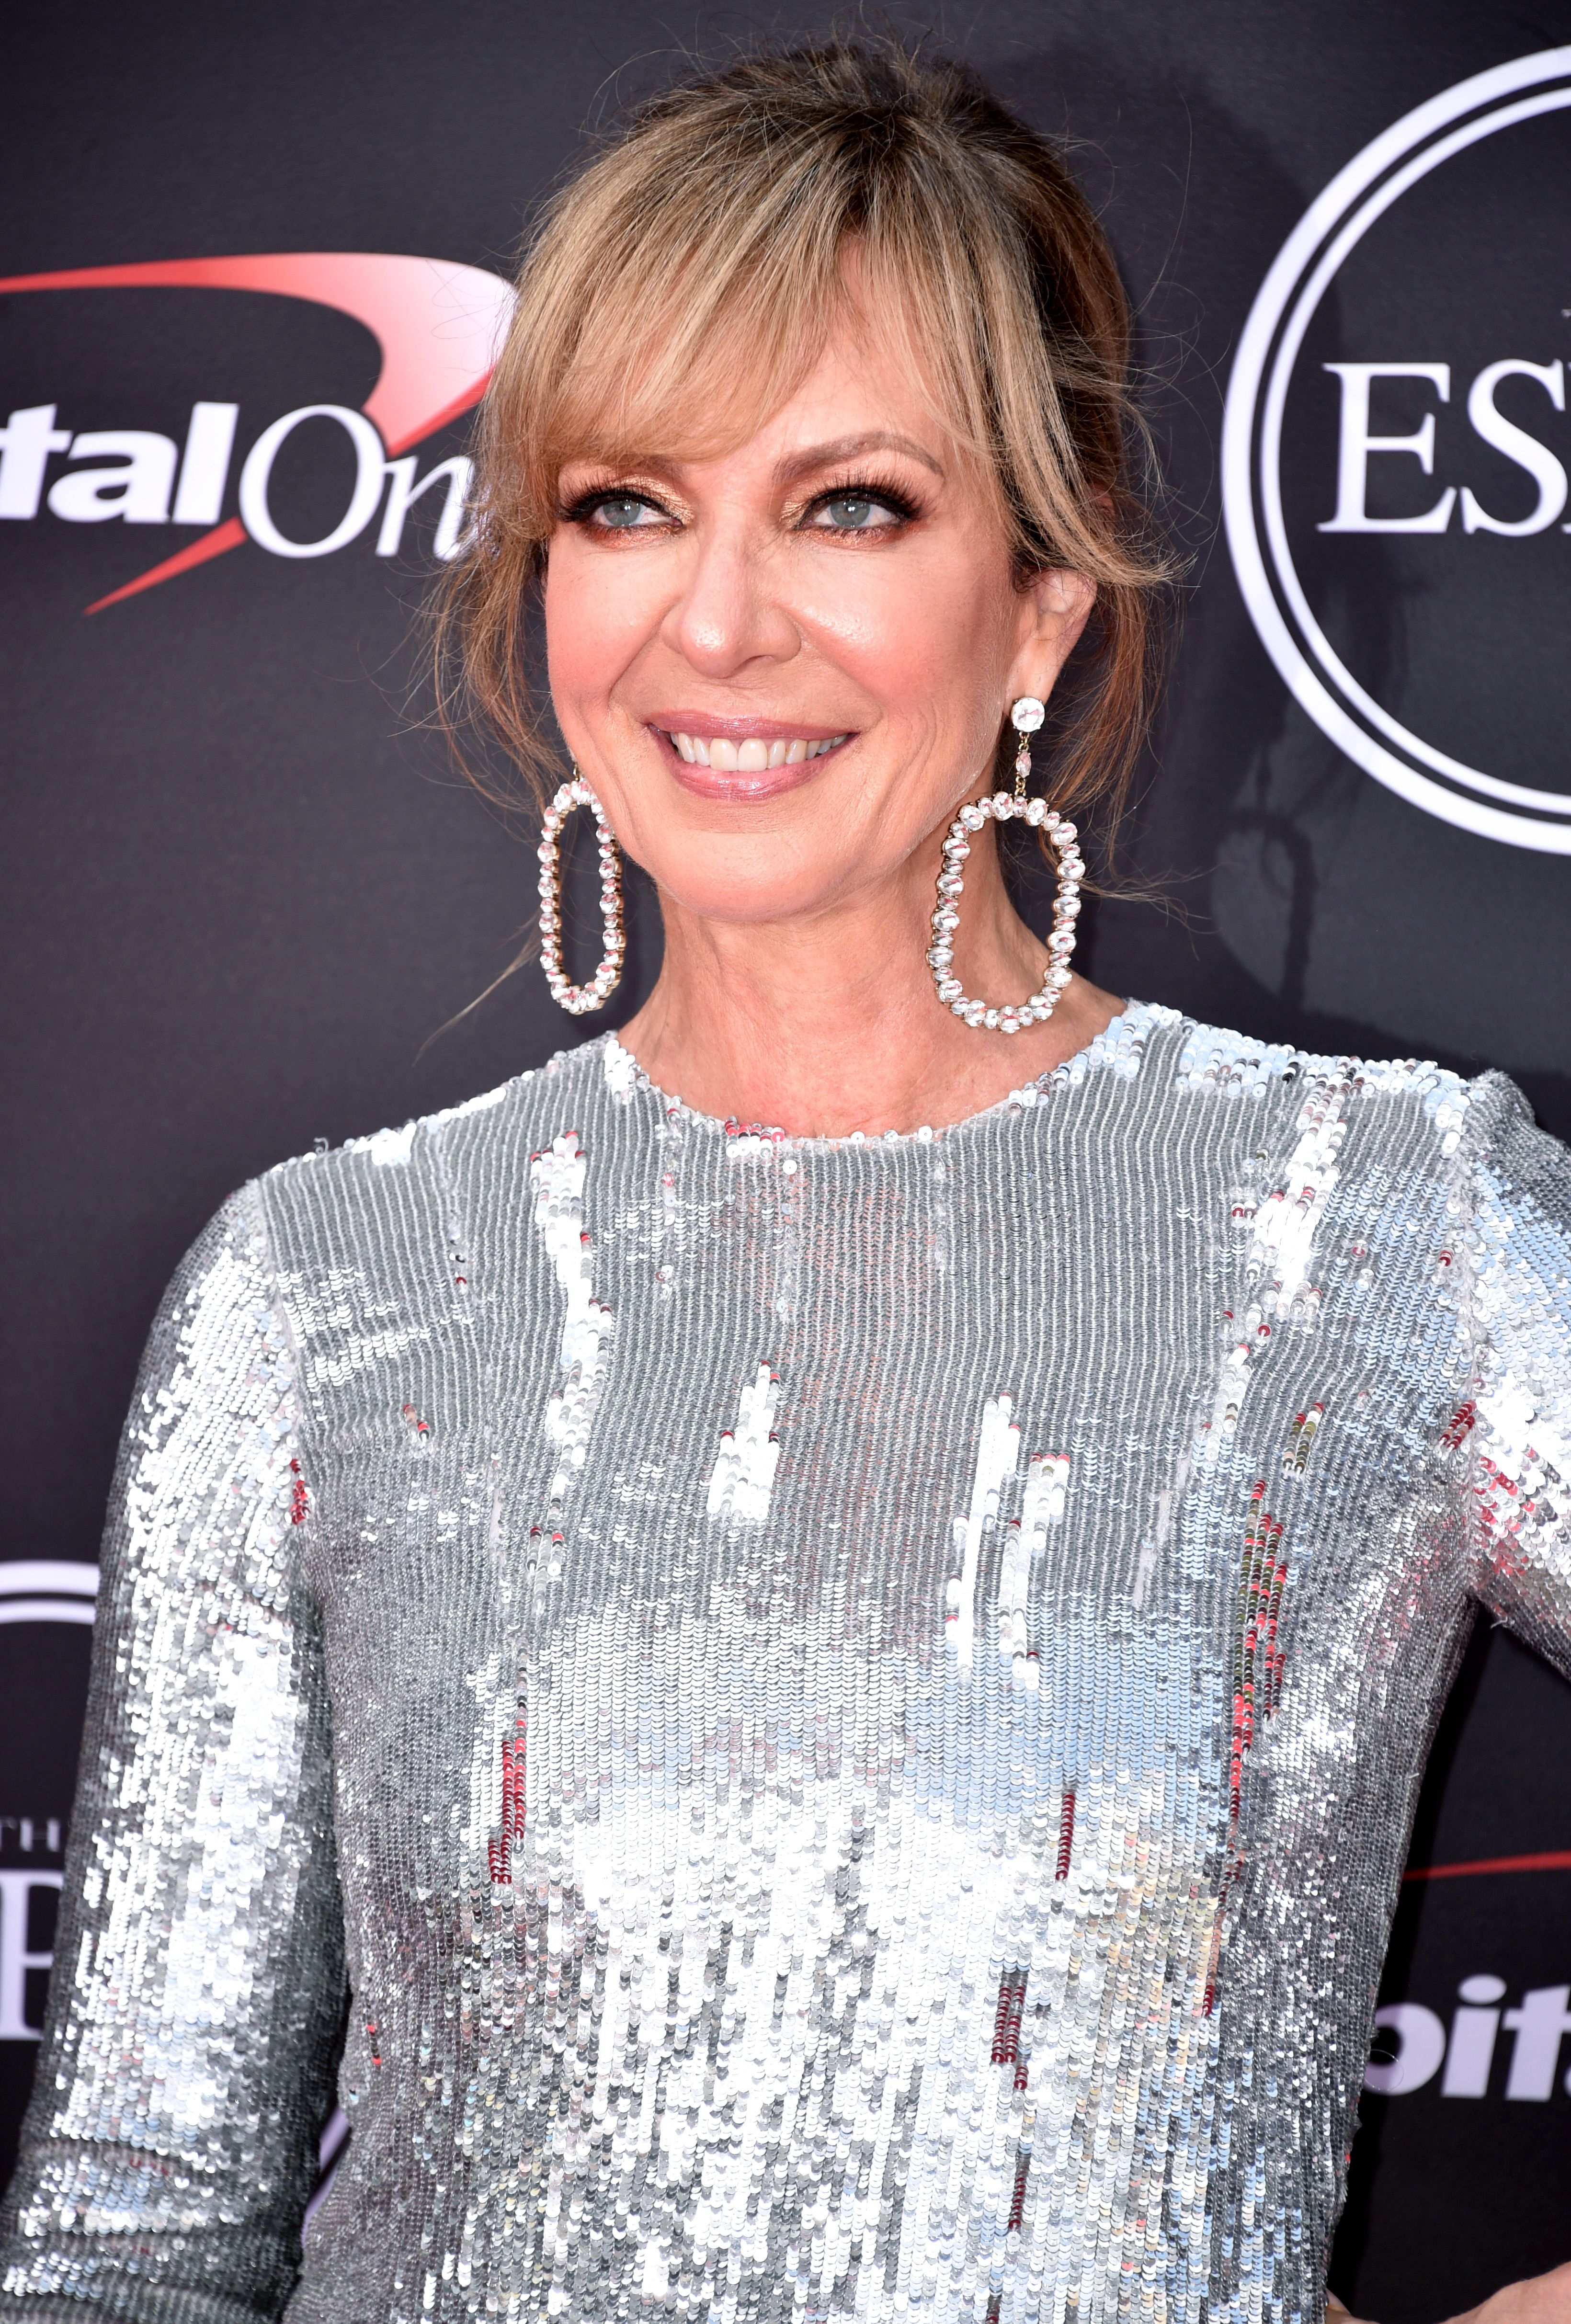 Allison Janney attends the ESPY Awards in Los Angeles on July 18, 2018.